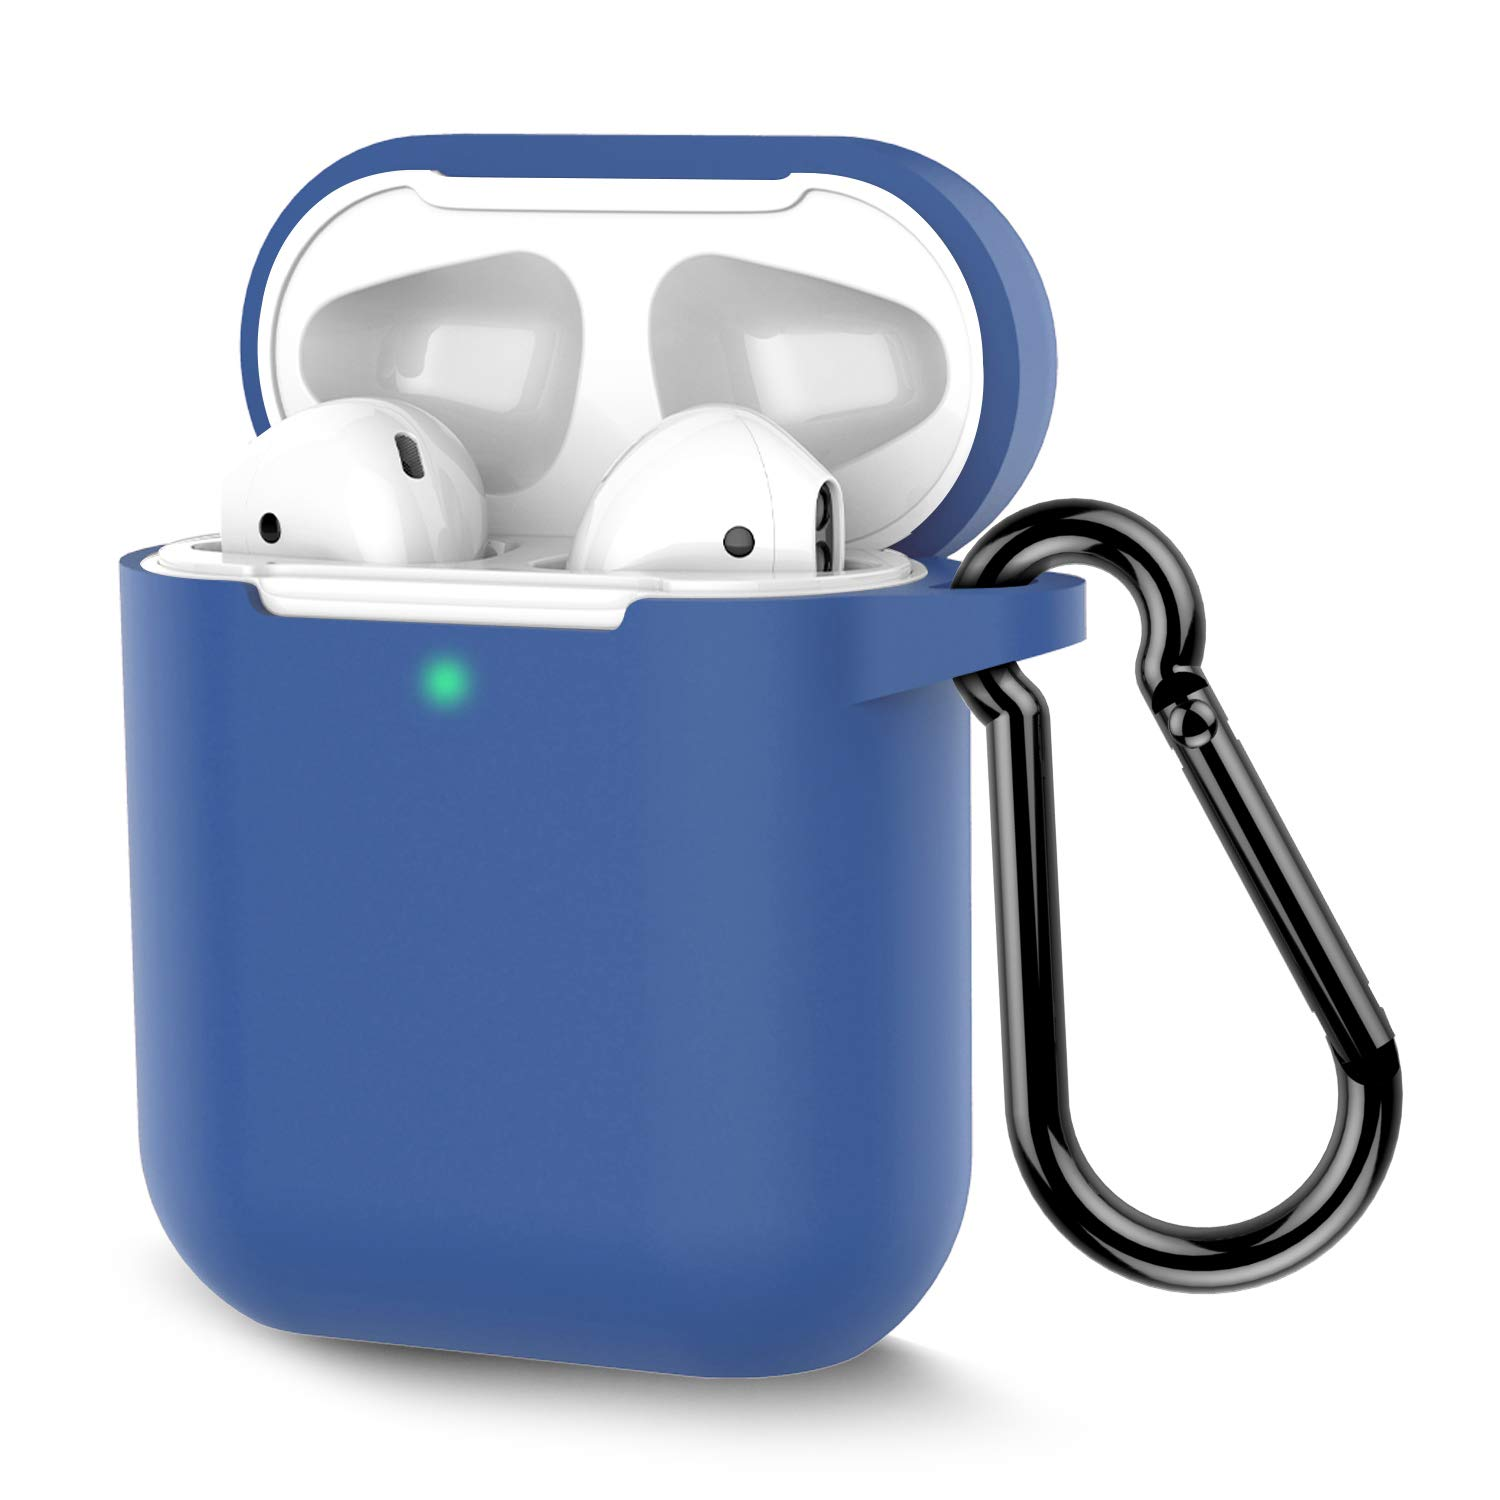 Coffea AirPods Case, Protective Silicone Cover Skin with Keychain for AirPods 2 Wireless Charging Case [Front LED Visible] (RoyalBlue)